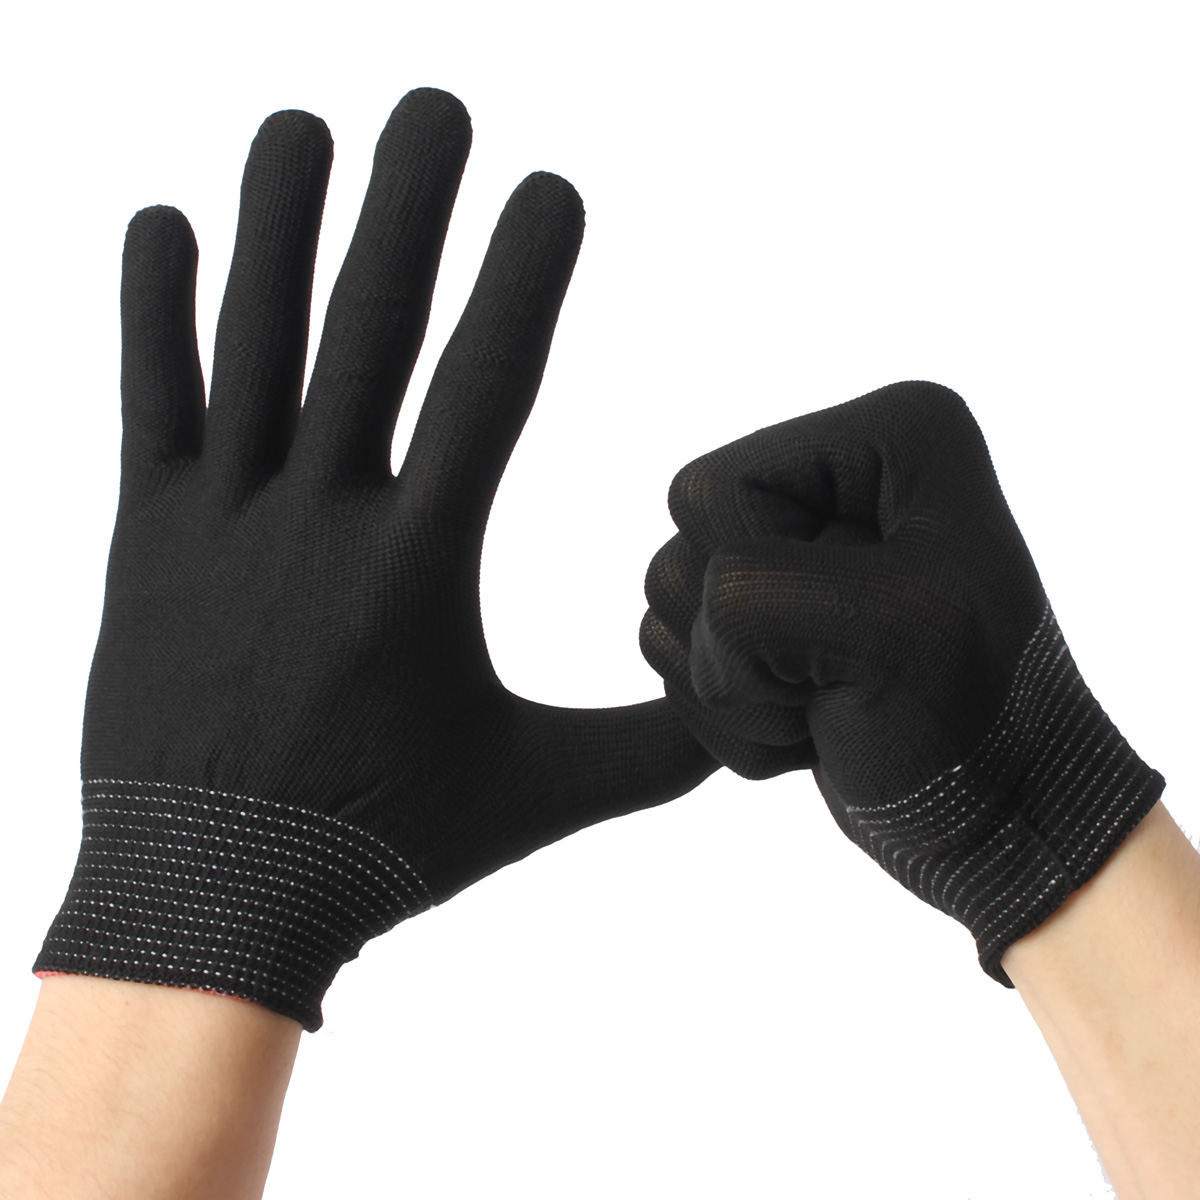 2 Pairs Work Gloves Antistatic Working Gloves Workplace Safety Supplies Safety Gloves Guantes Trabajo